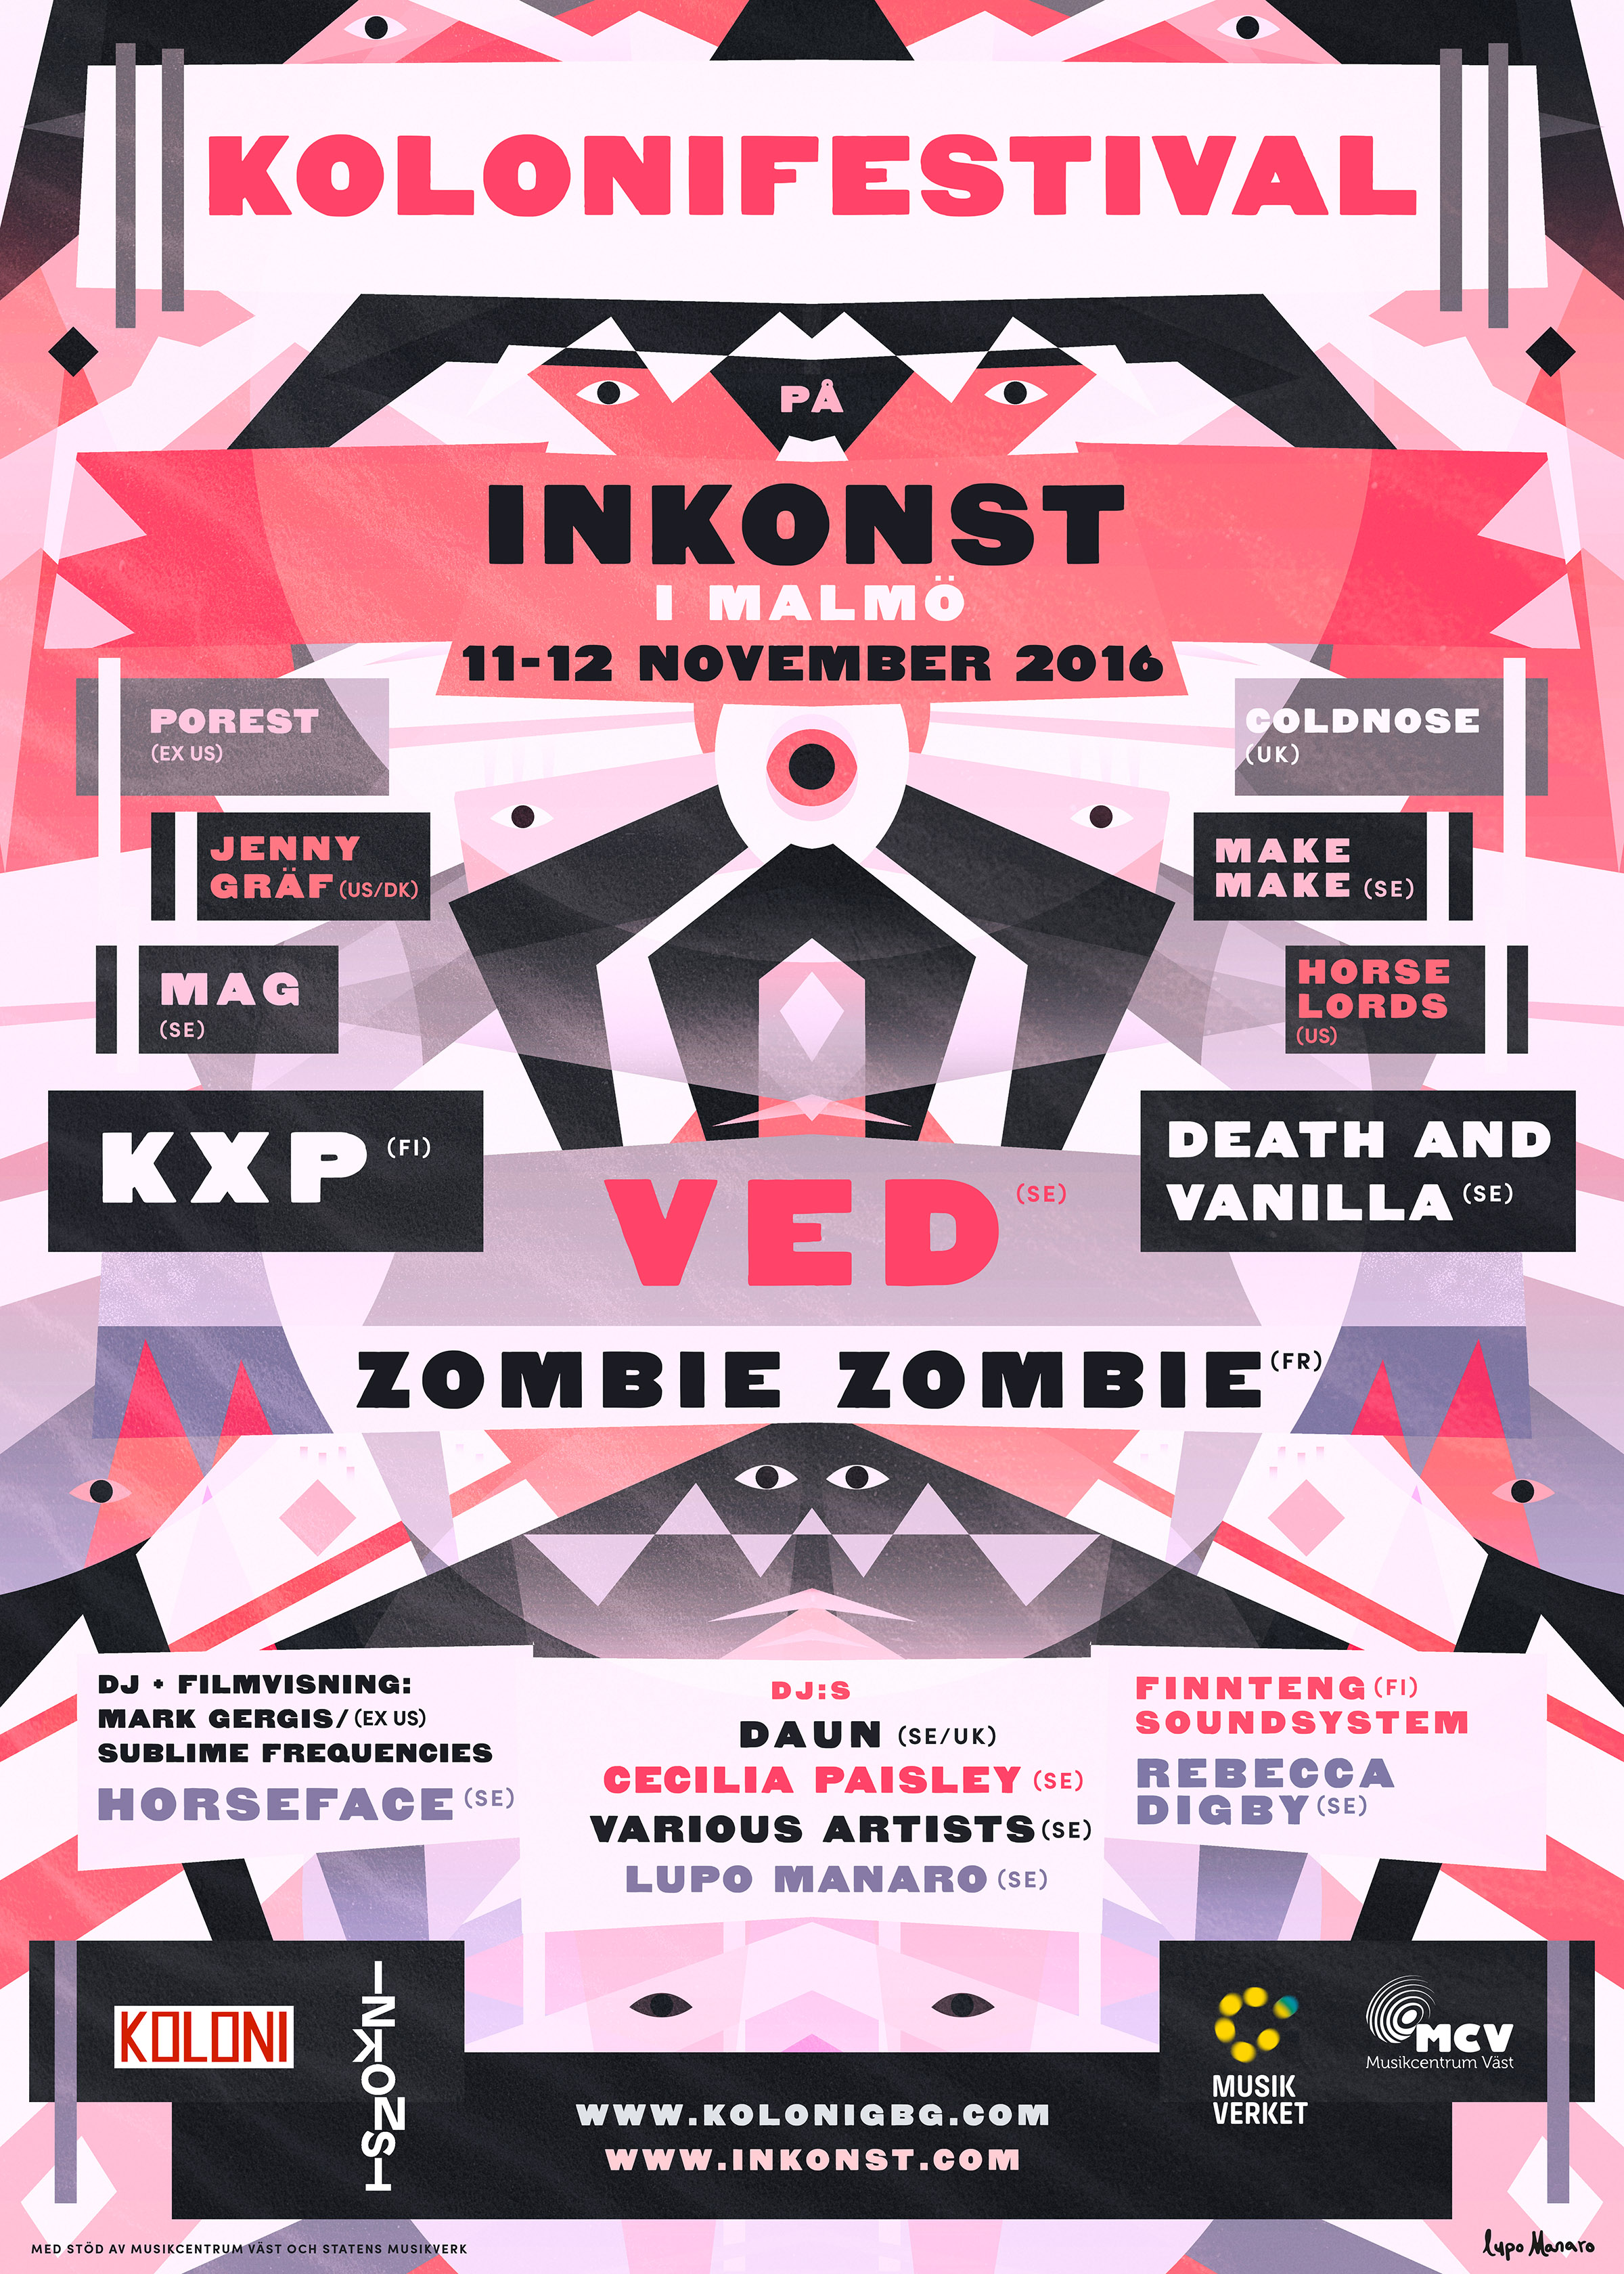 Poster for Kolonifest at Inkonst featuring abstract elements in purple, black and pink.